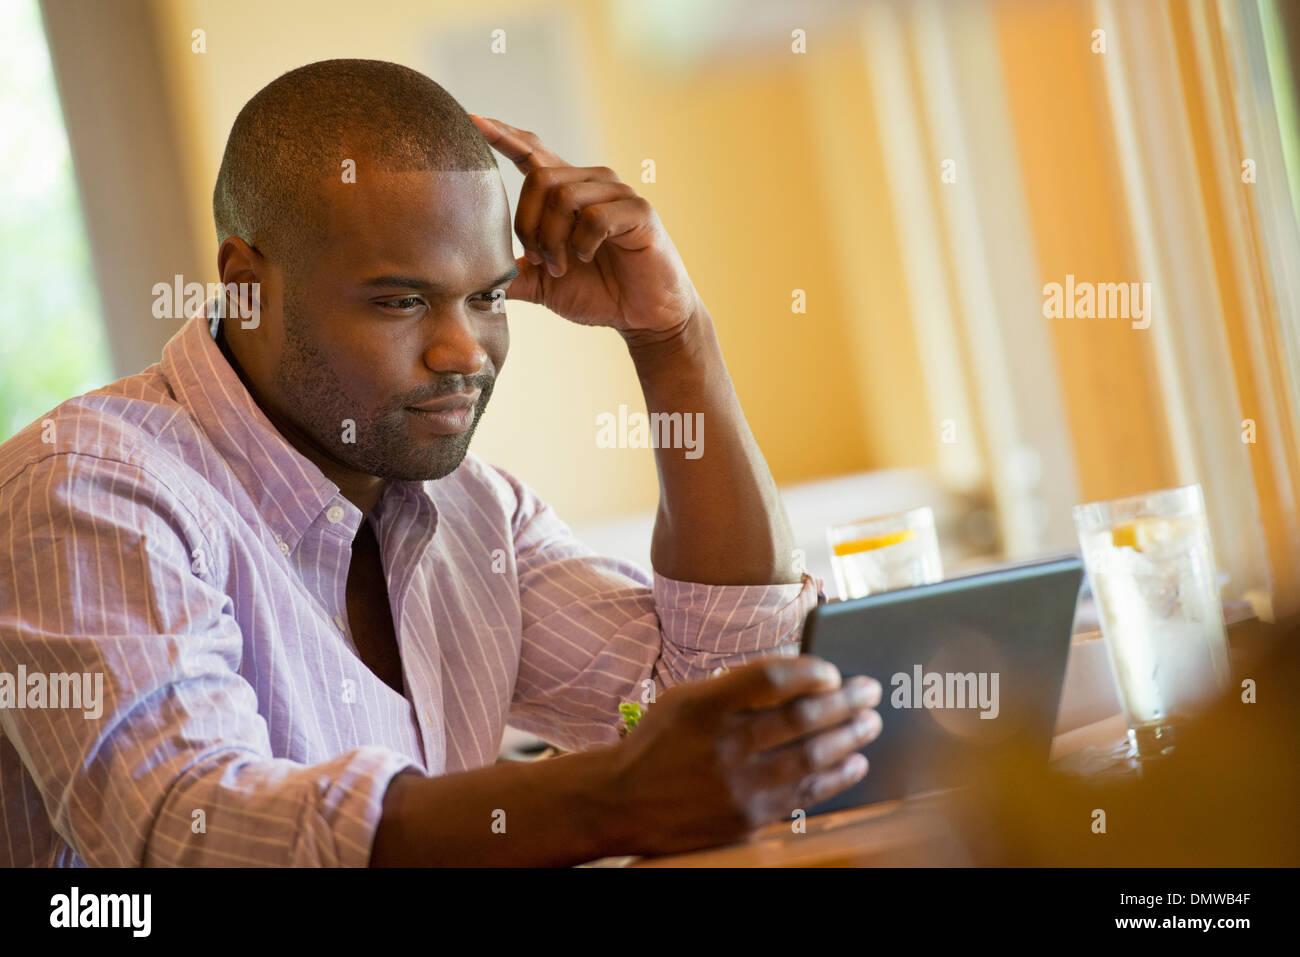 A man in a cafe using a digital tablet. - Stock Image